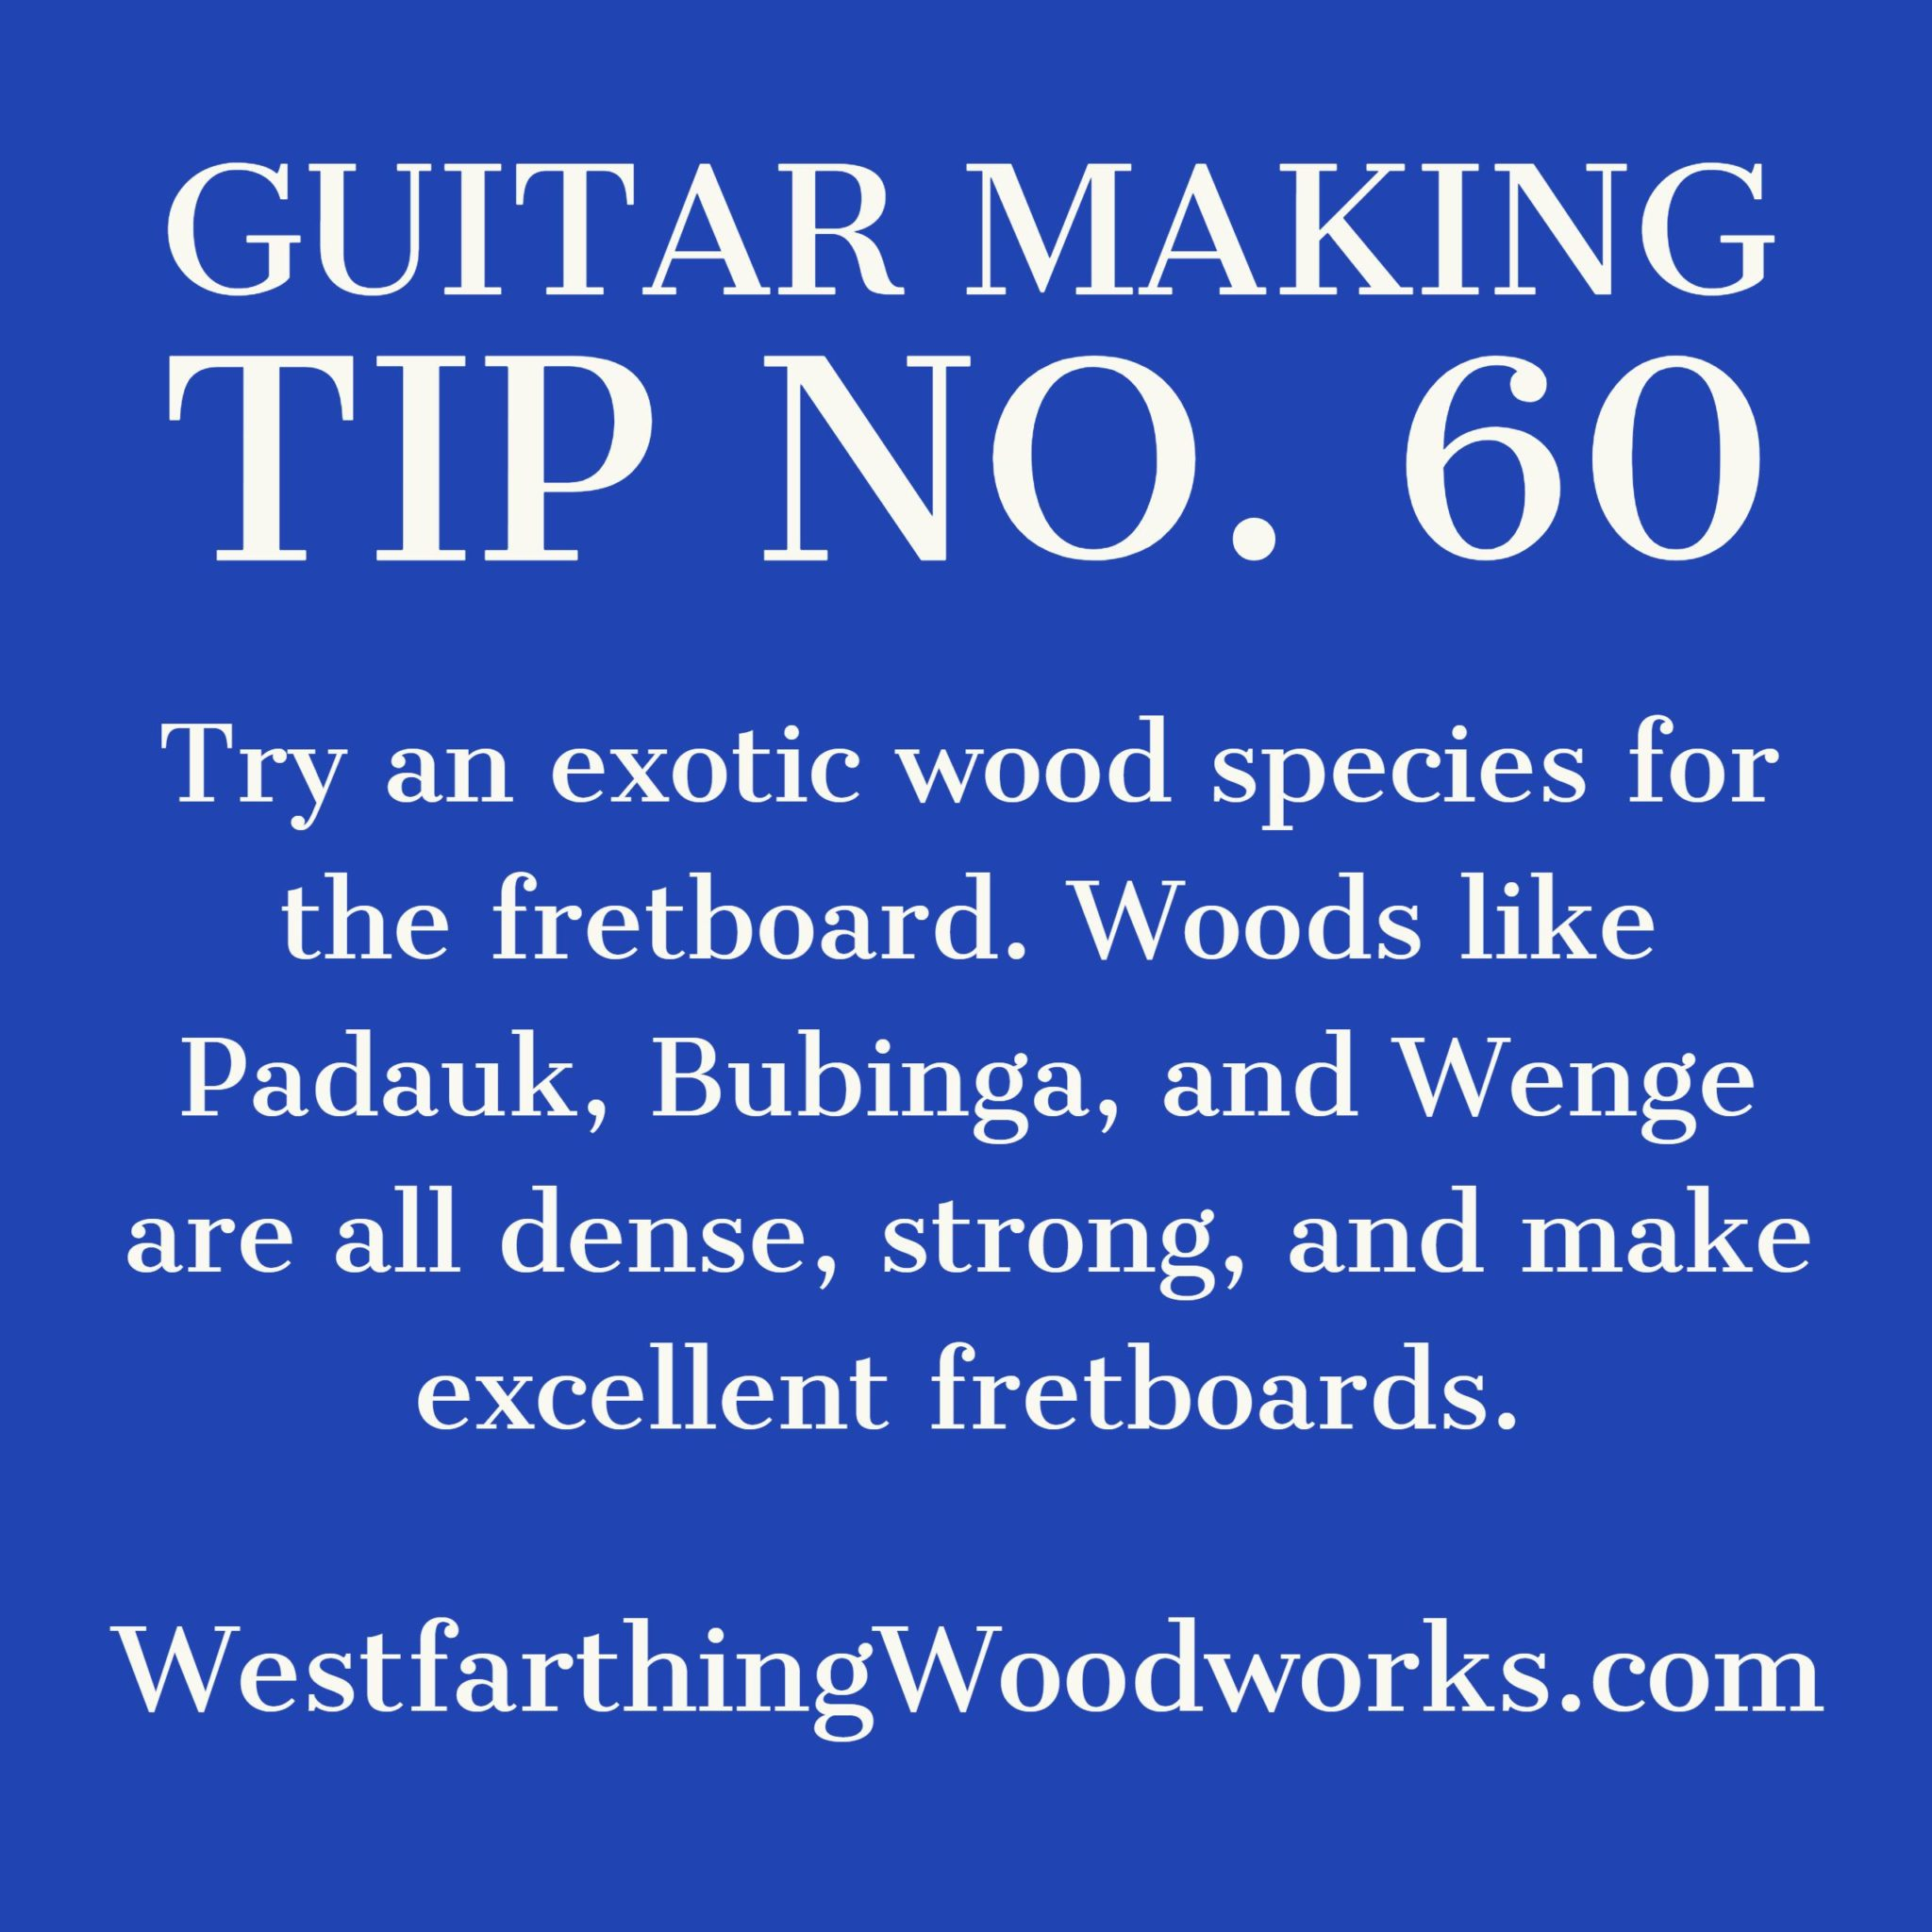 guitar making tip number 60